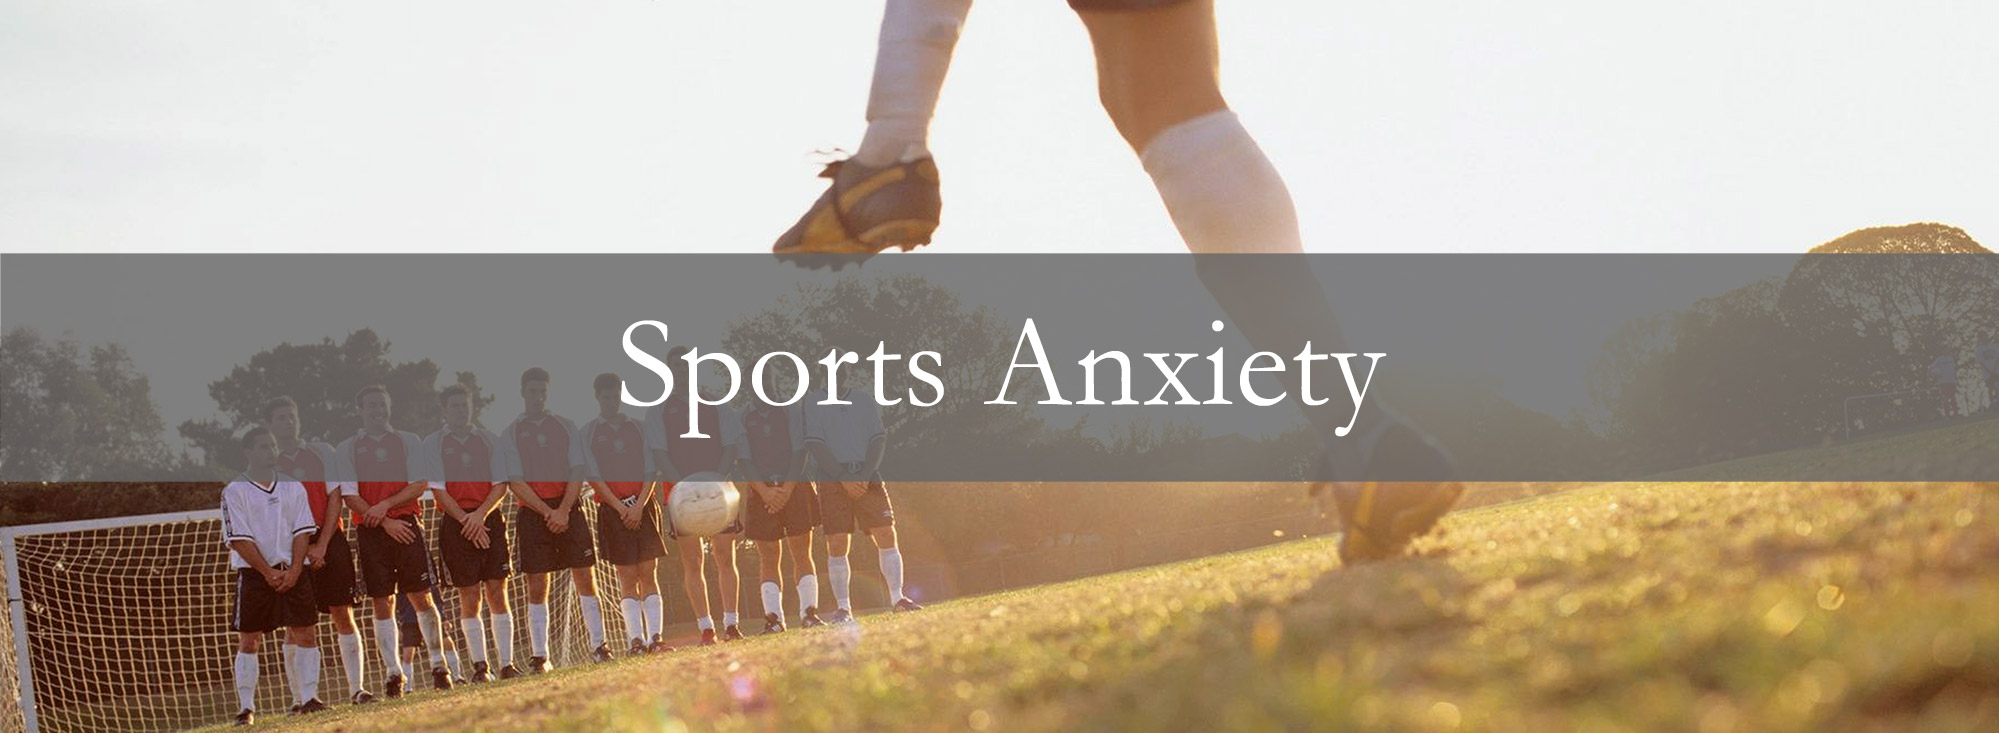 Sports Anxiety